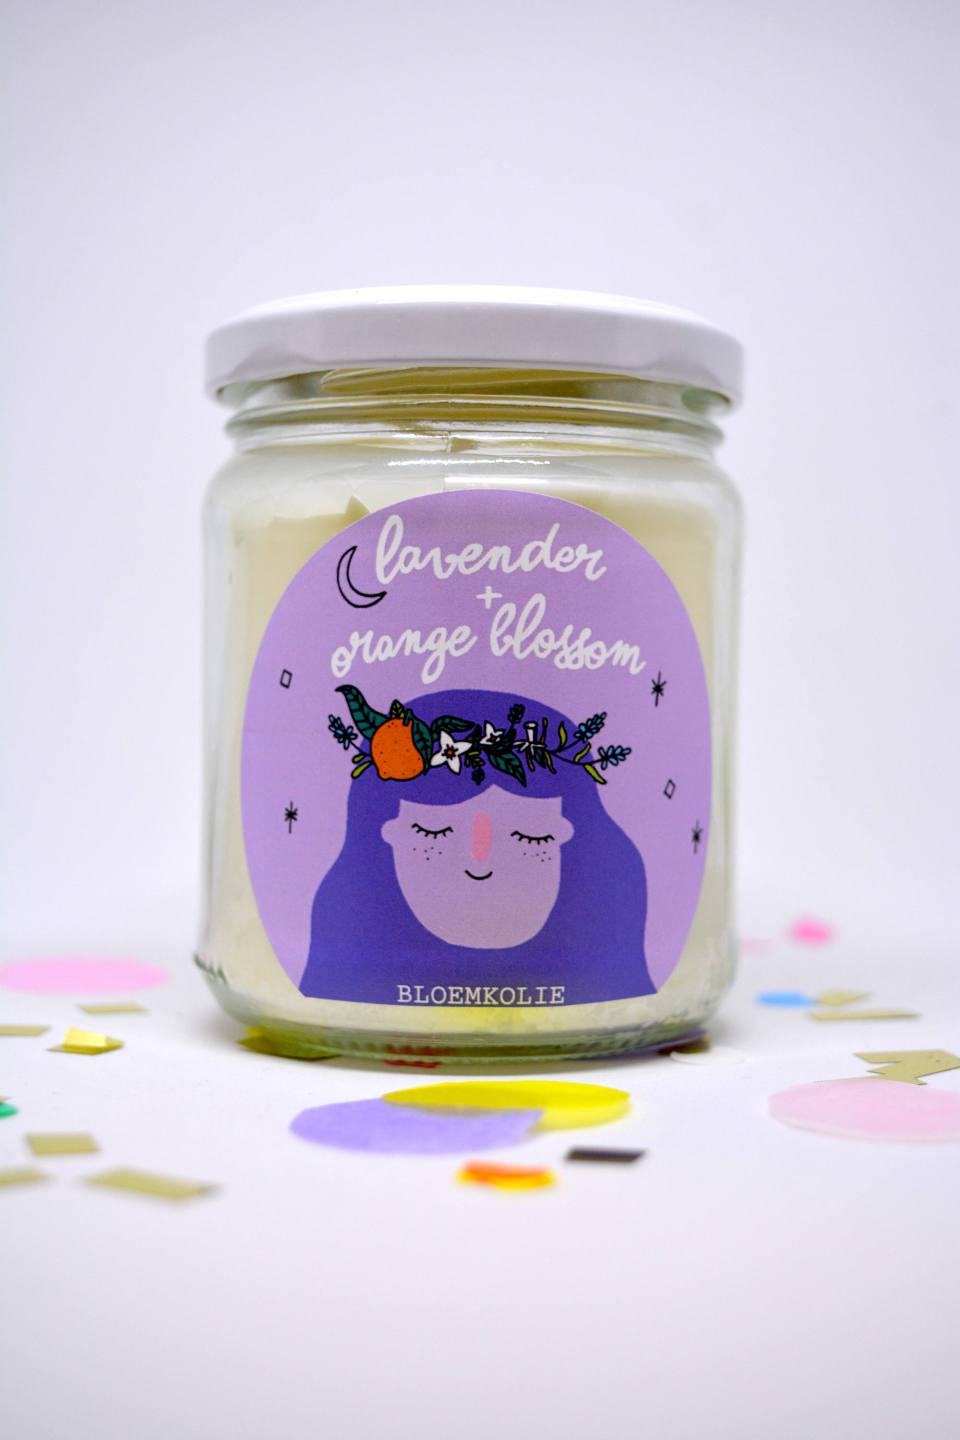 Soy candle by Bloemkolie